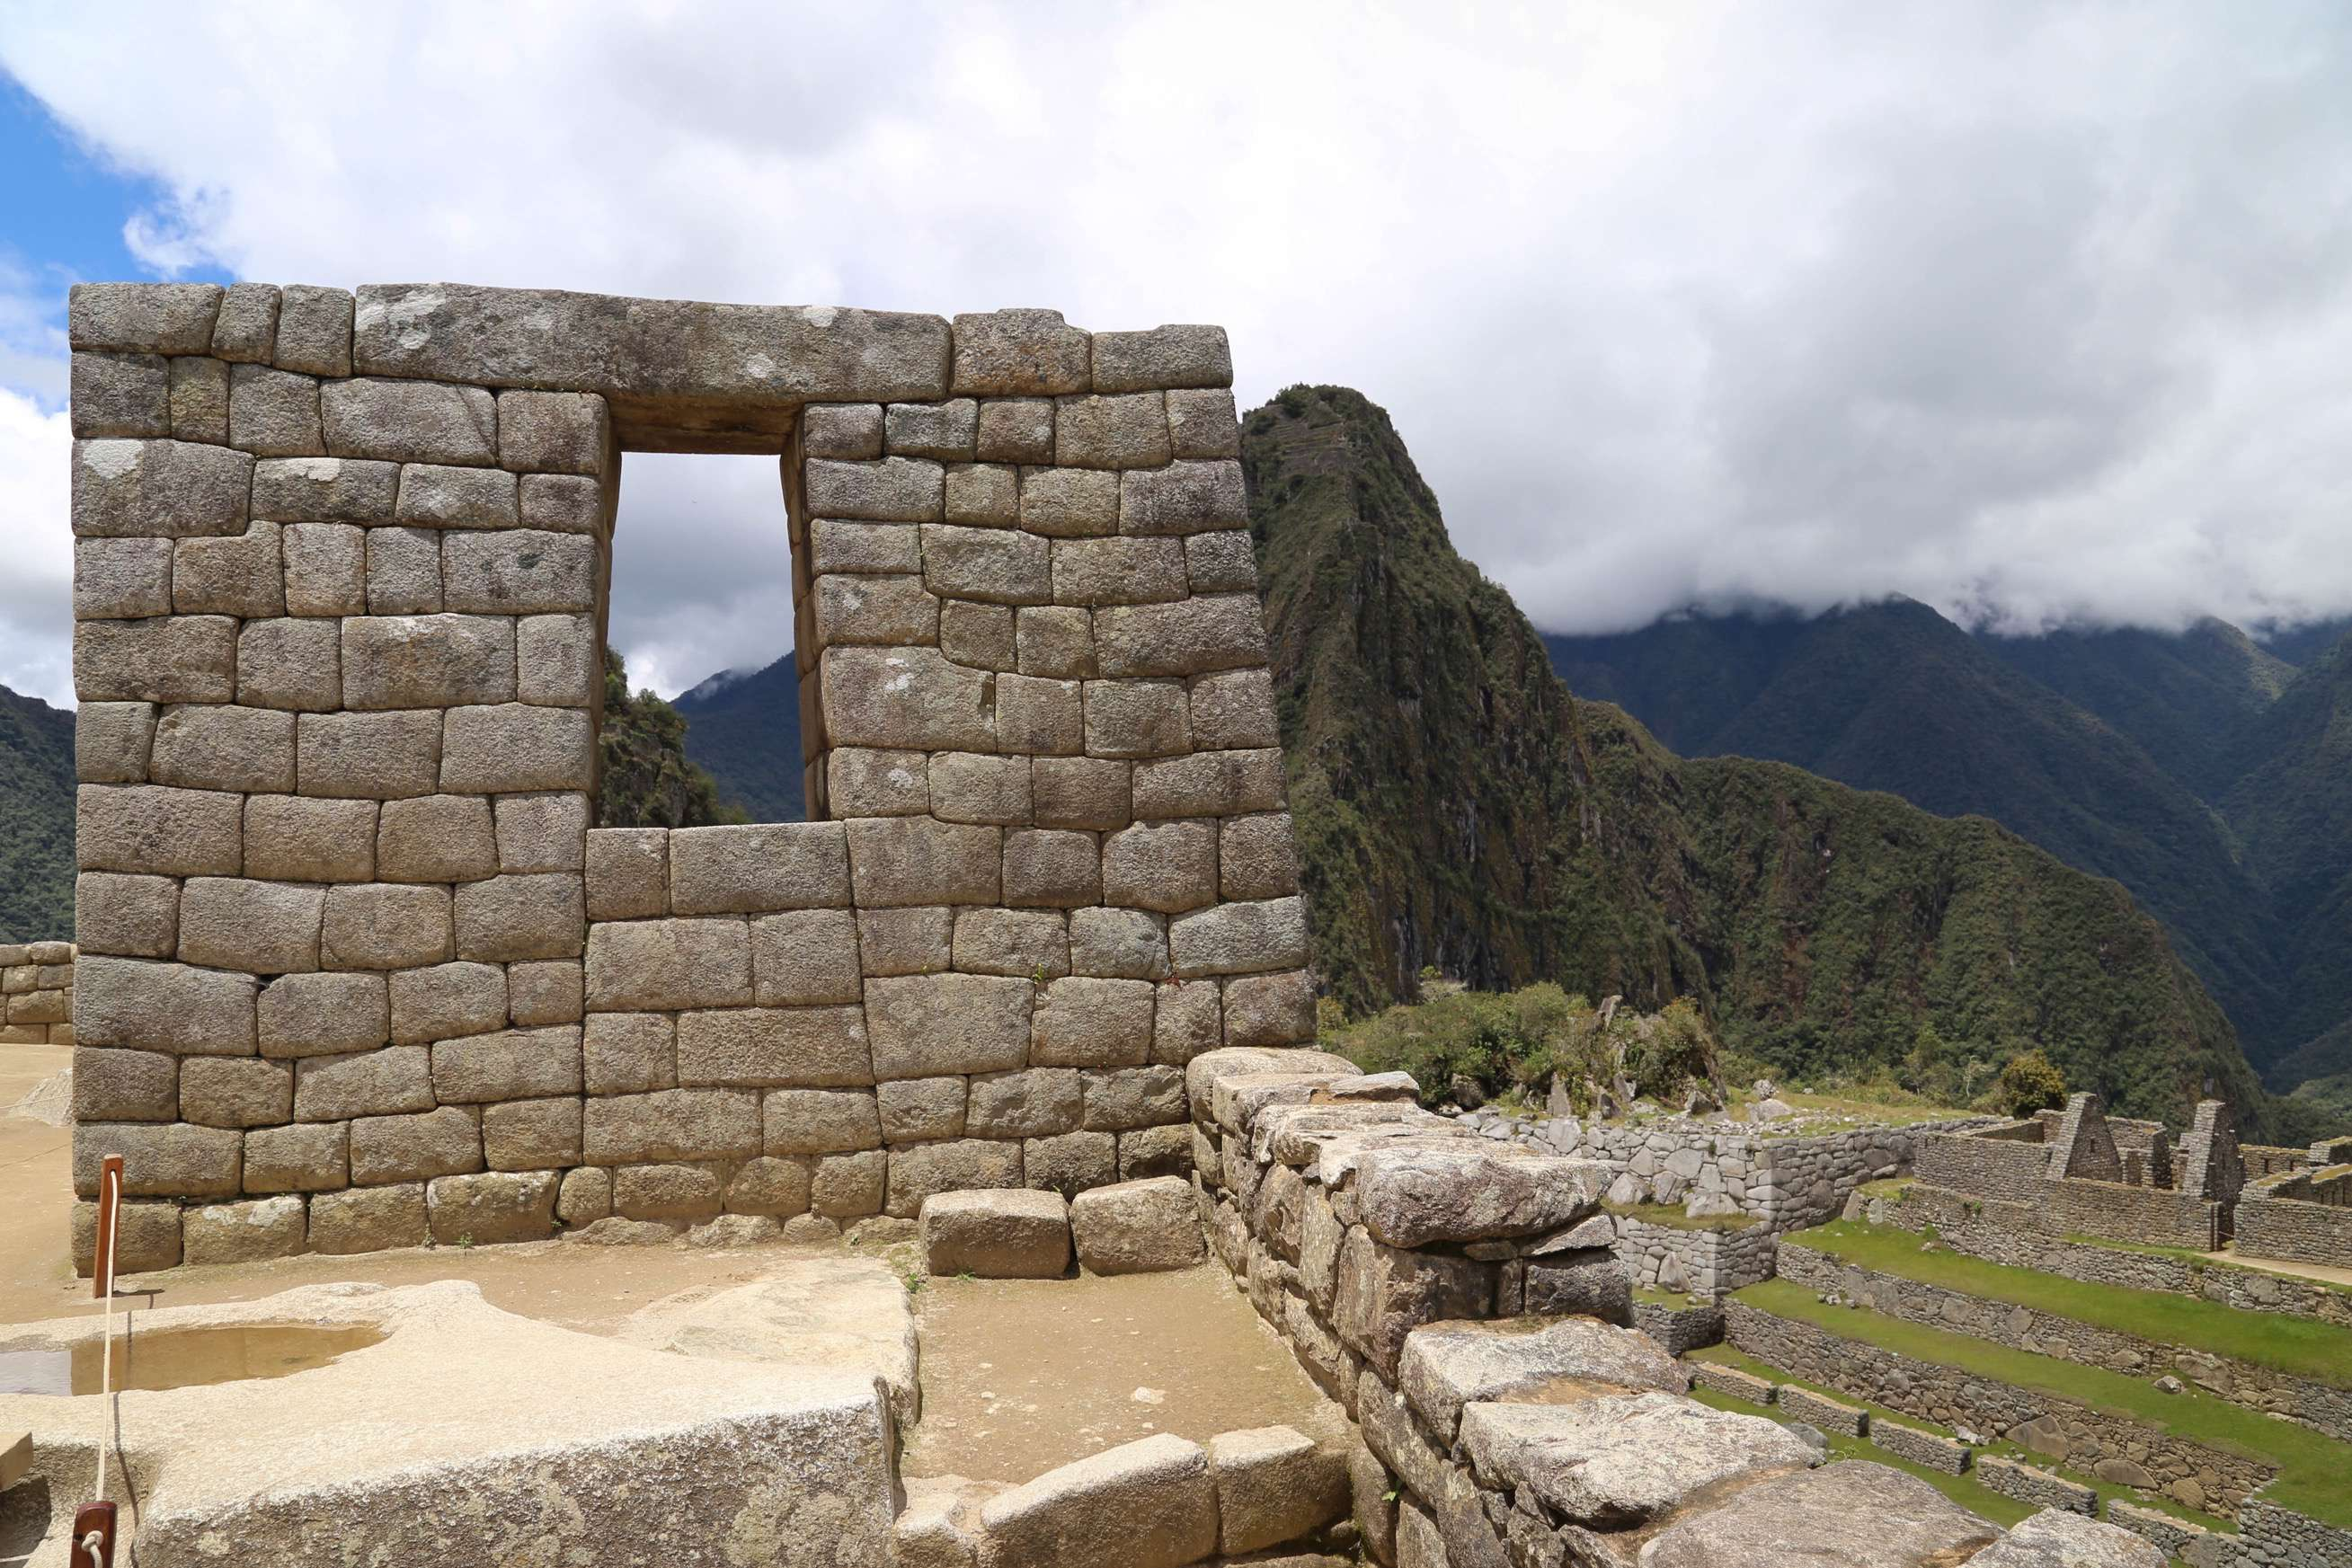 The Incas understood they lived in an earthquake-prone area, but solved the construction problem by giving their building a slight inward lean of about five degrees, giving walls and buildings added stability.